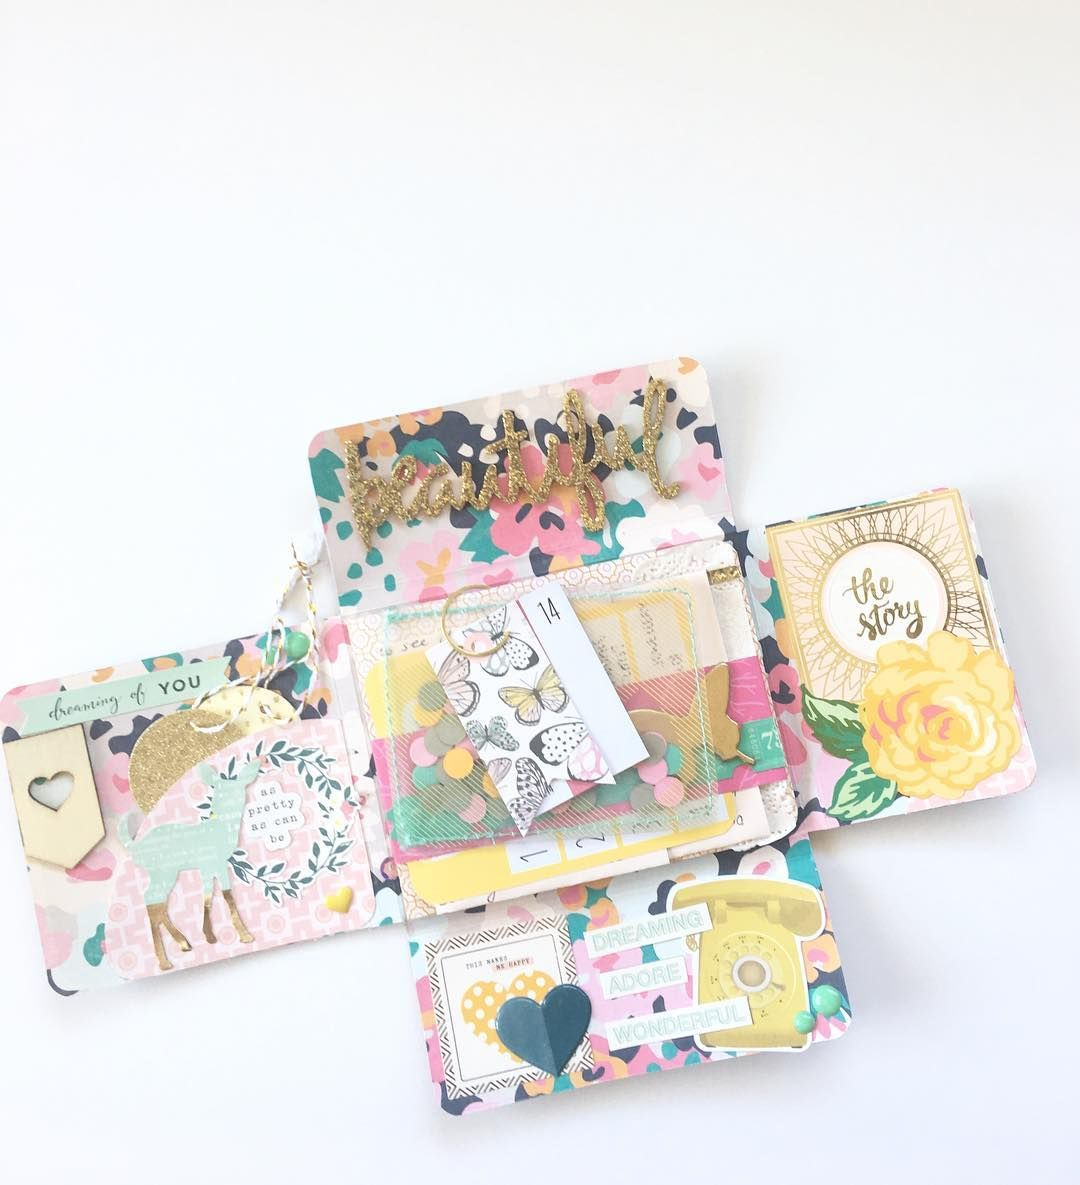 Scrapbooking Stationery Pen Pals Greetings Cards Journal Inserts 5 Shaped Kawaii Fashionable People Postcards for Snail Mail